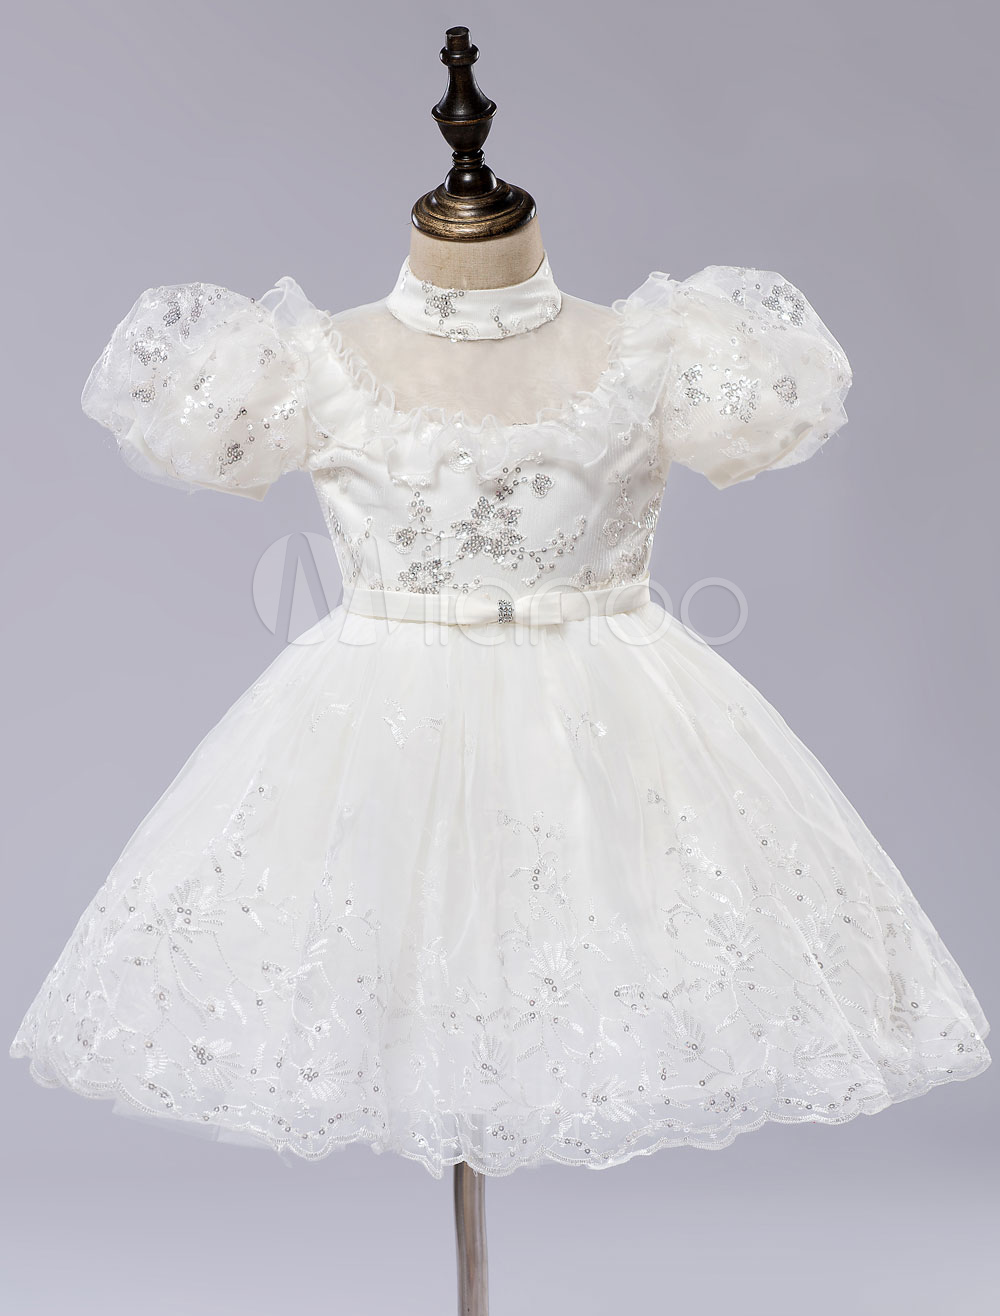 Buy Princess Toddlers' Dress Flower Girl's Dress Puffy Sleeves Pageant Dress With Illusion Neck for $55.79 in Milanoo store